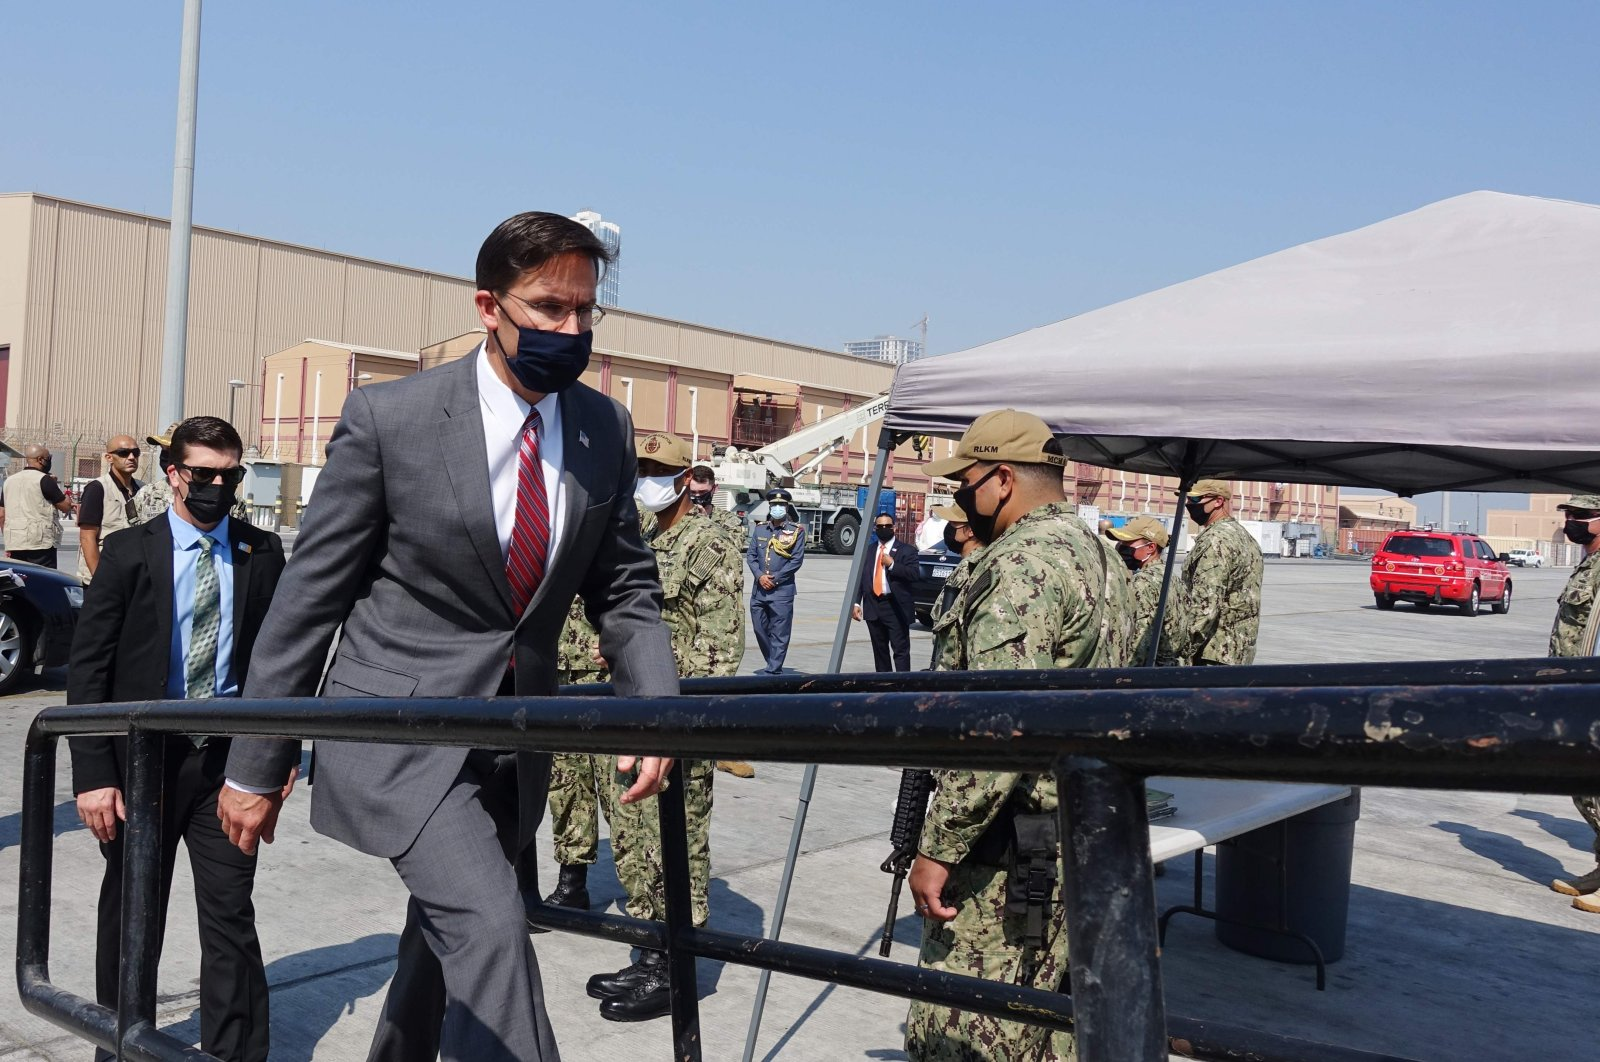 US Defense Secretary Mark Esper (C) boards on October 28, 2020 the USS Devastator minesweeper while on a visit to the Naval Forces Central Command base in the Gulf kingdom of Bahrain. (AFP Photo)